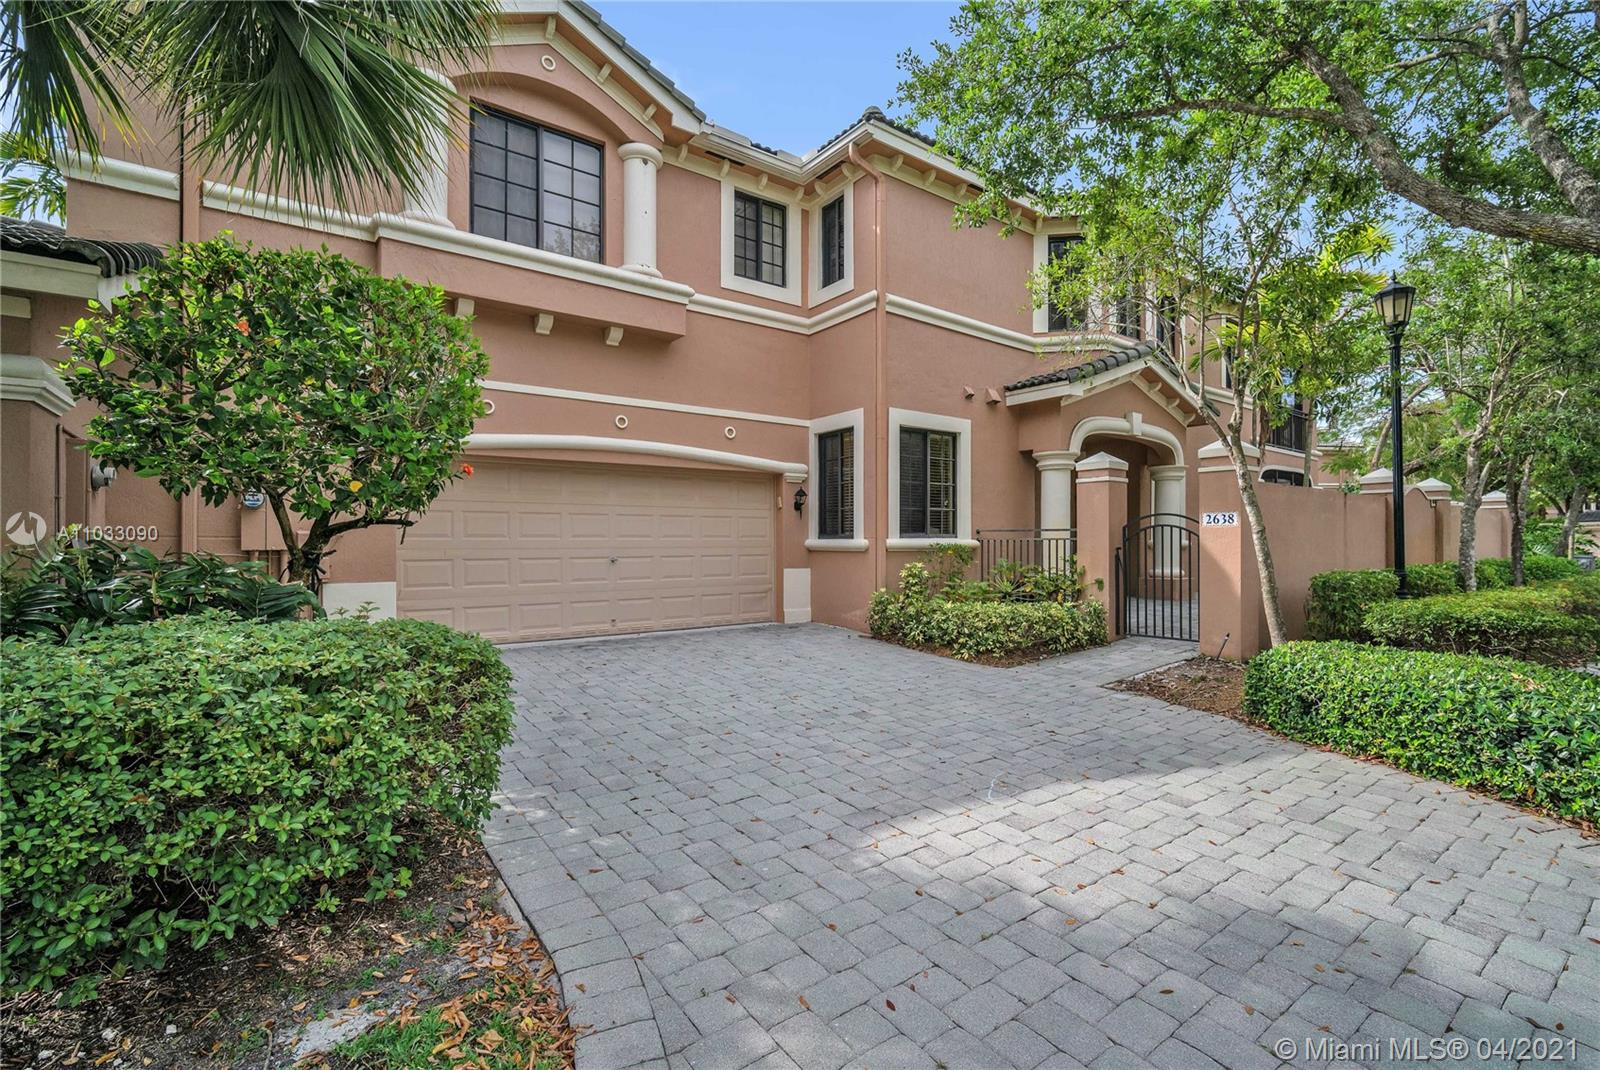 THE GEM OF COURTSIDE.... Best downstairs unit in complex. Corner unit with rare private driveway and 4 additional guest parking spaces inside the exclusive Courtside at Weston Hills Country Club. Enjoy a high-end renovated kitchen with italian custom made cabinets and top of the line Subzero and Jenn-Air appliances ($30k value). Immaculately taken care of, Custom-Made Garage, High Impact Doors, Open Porch, Patio, Privacy Wall, Screened Porch and move in ready. Walking distance to Weston Hills Country Club and Weston Town Center shops and restaurants.